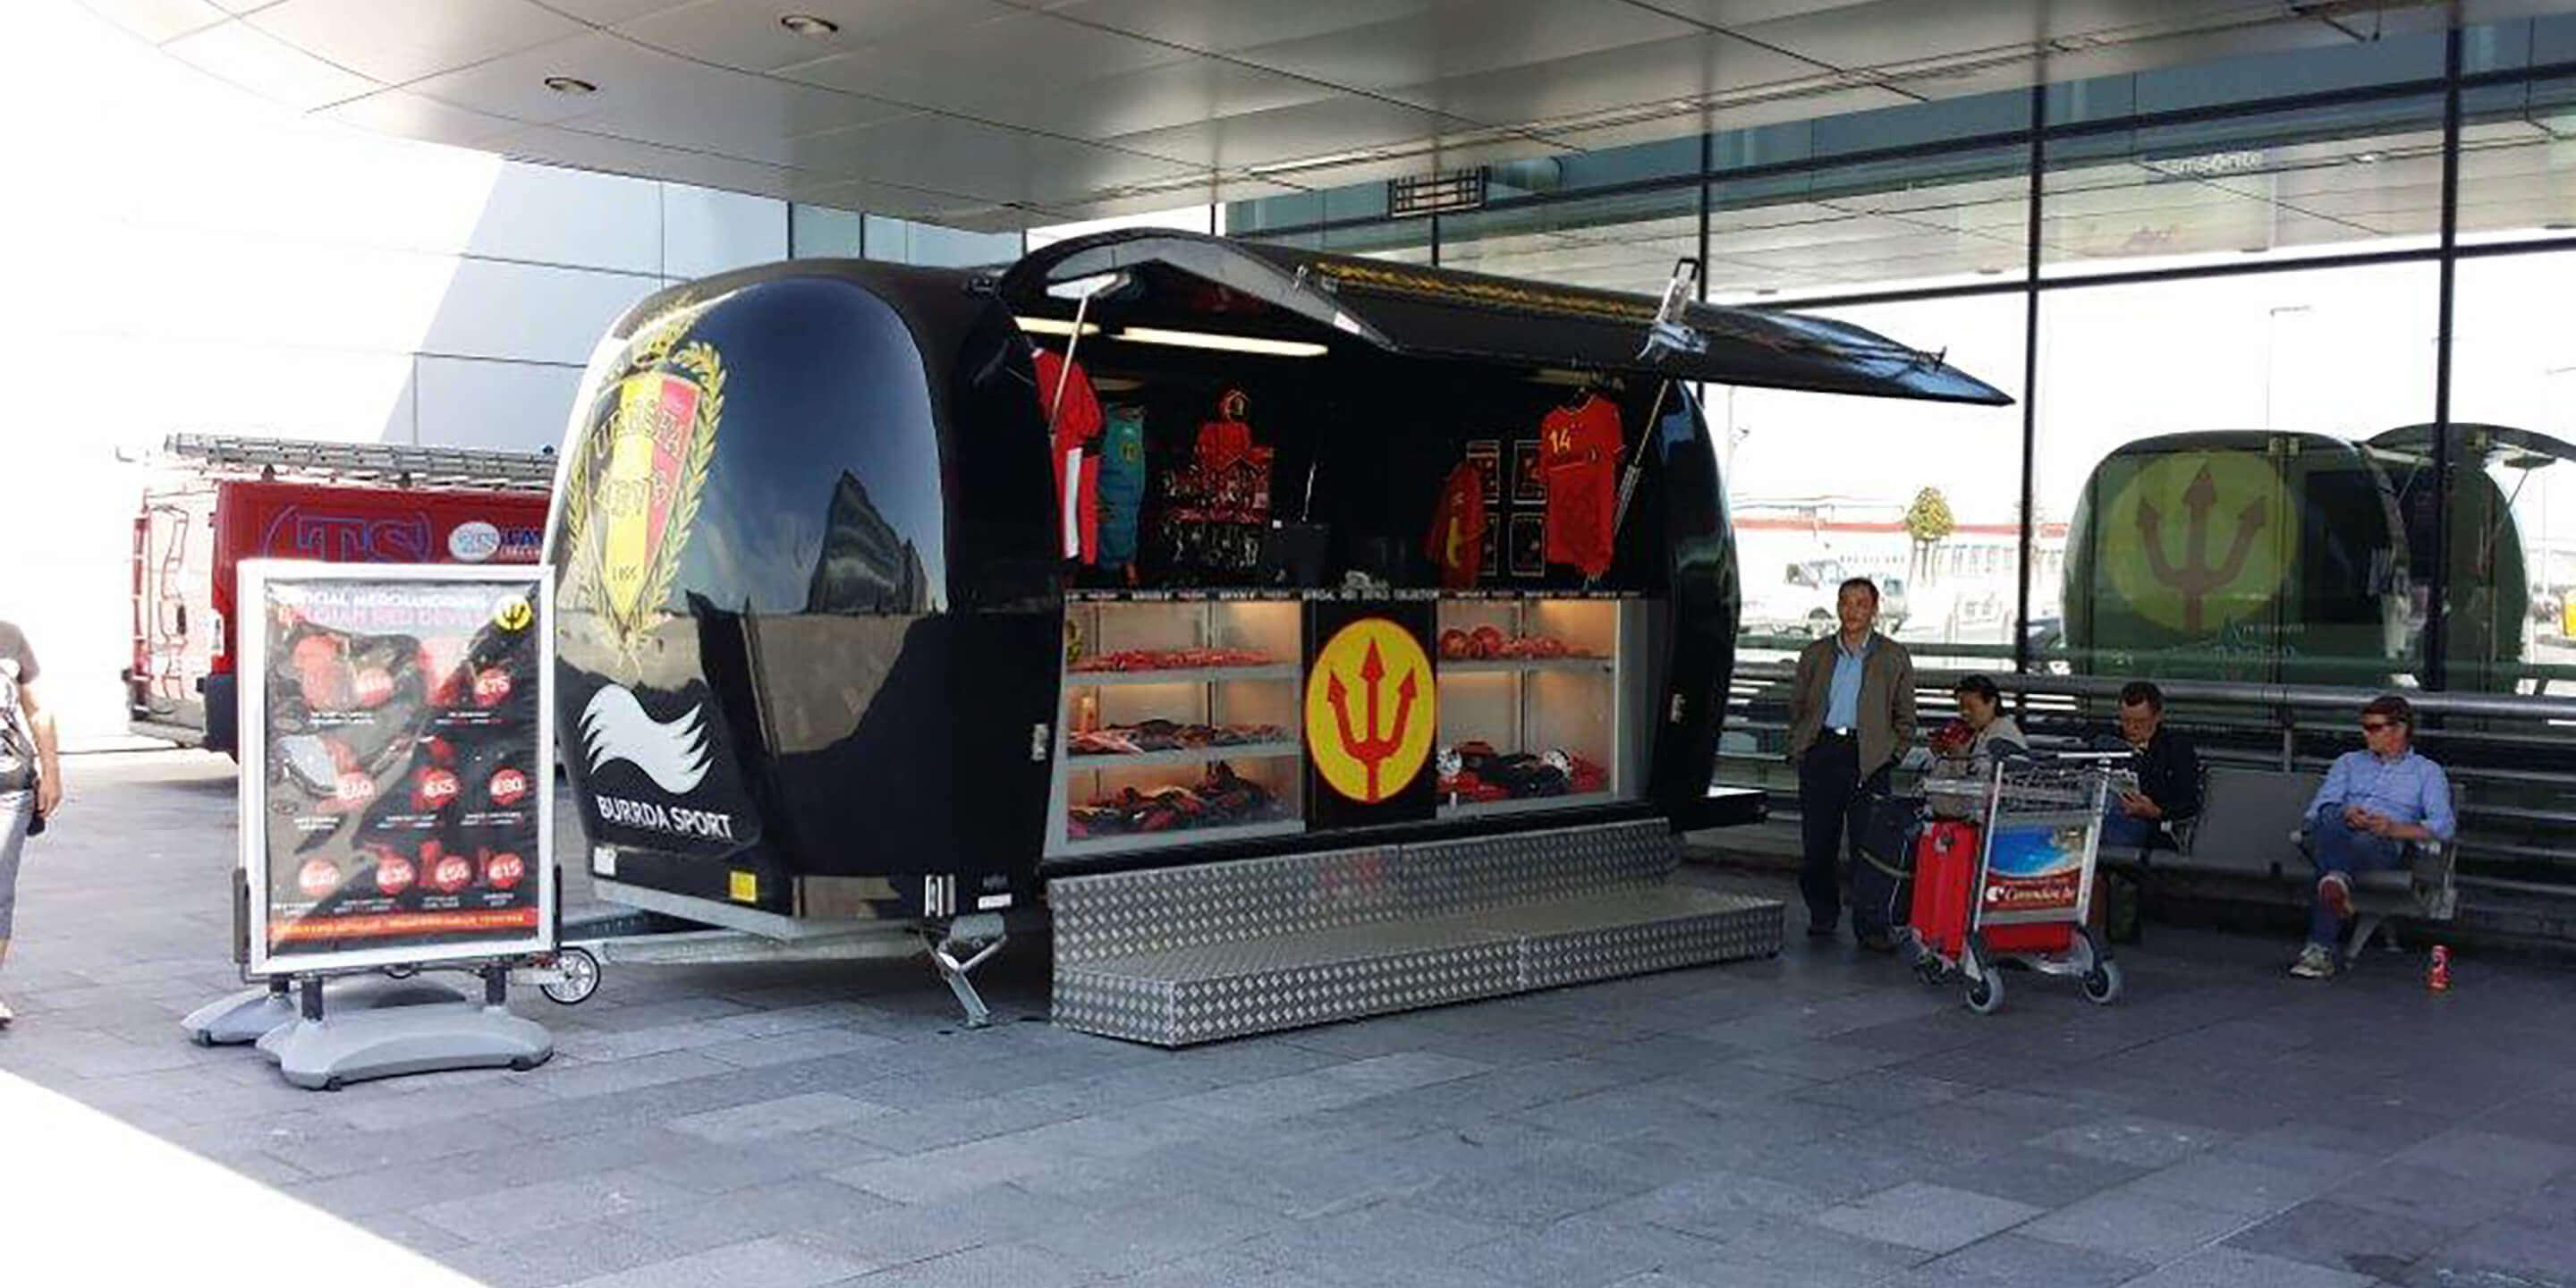 Exhibition Trailers: Explorer Promotional Vehicle for Burrda Store Tour